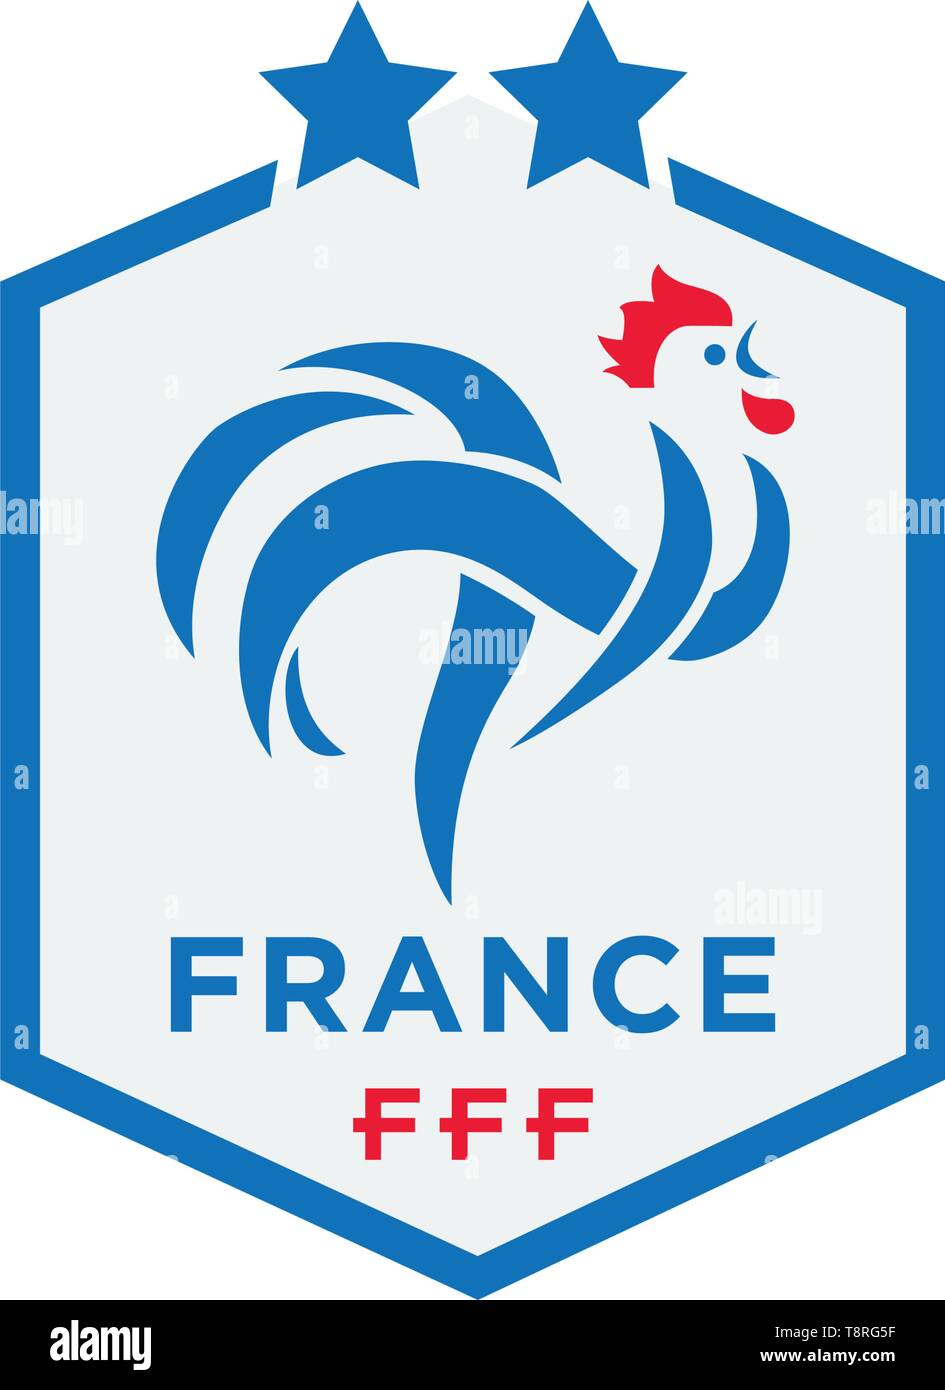 ea8489ee8 official logo of france football federation vector illustration icon element